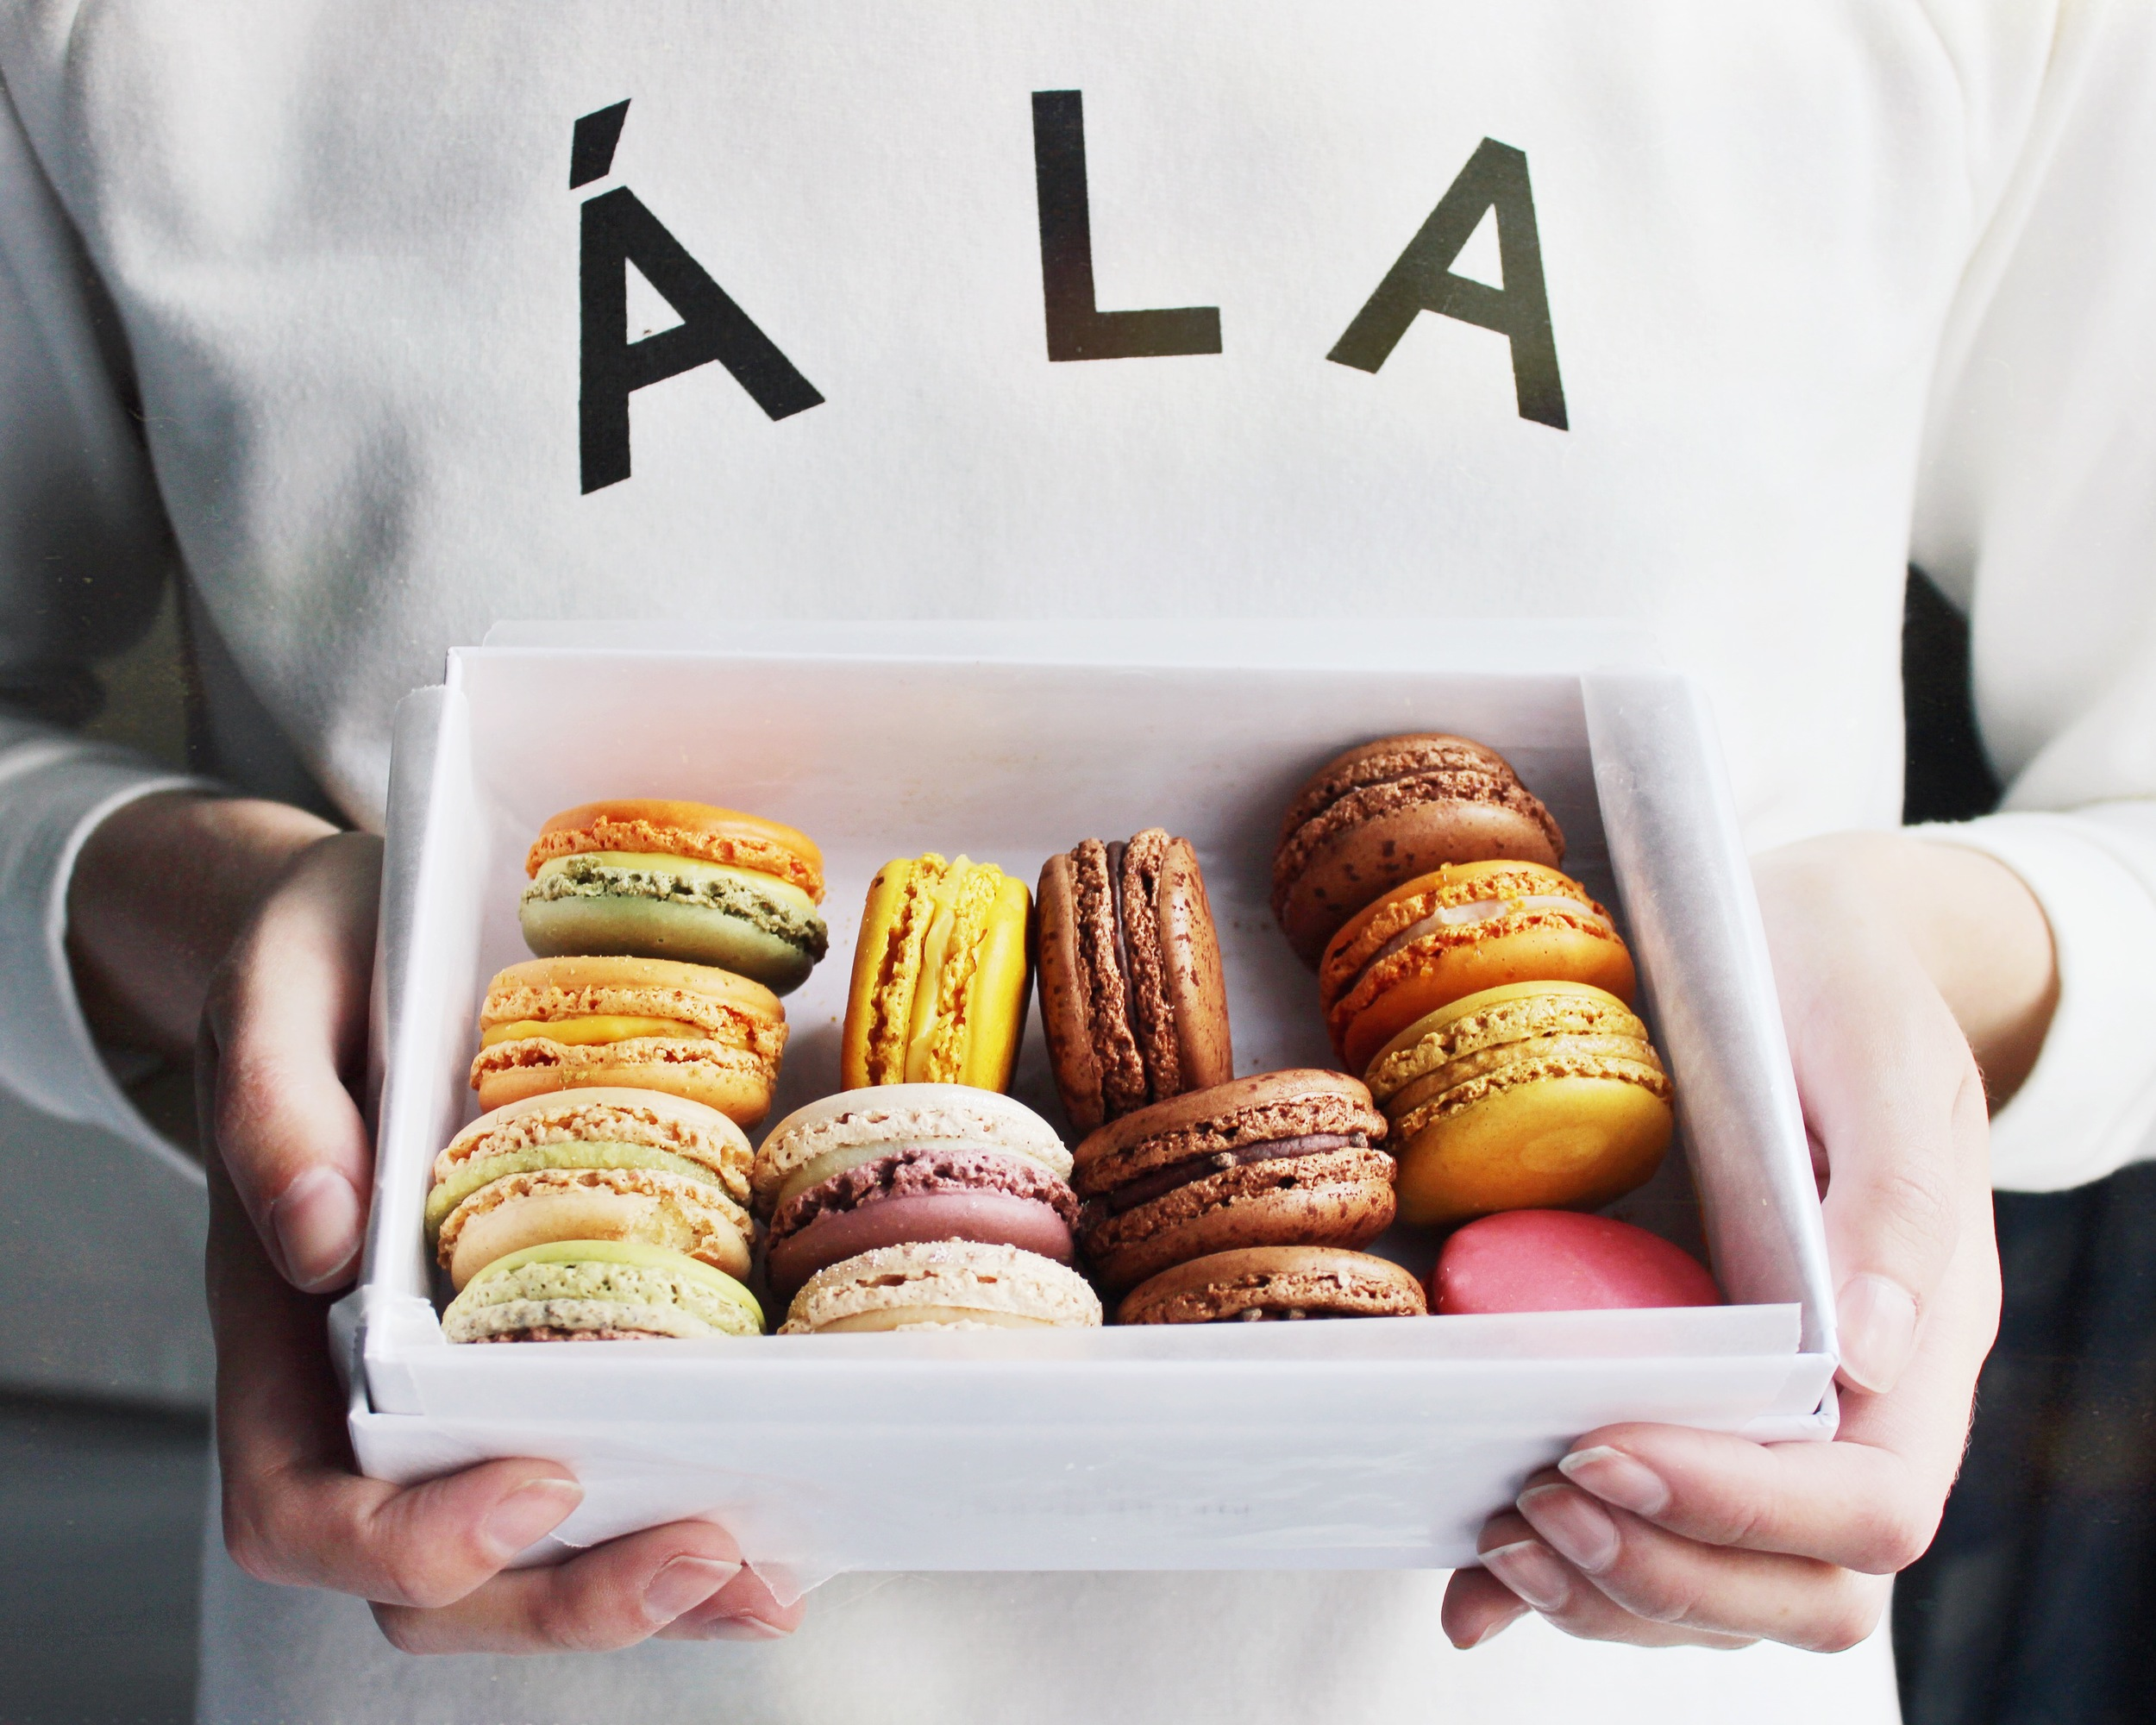 Hey, it's okay if you'd rather eat macarons in bed than tour the Louvre | Sundays and Somedays